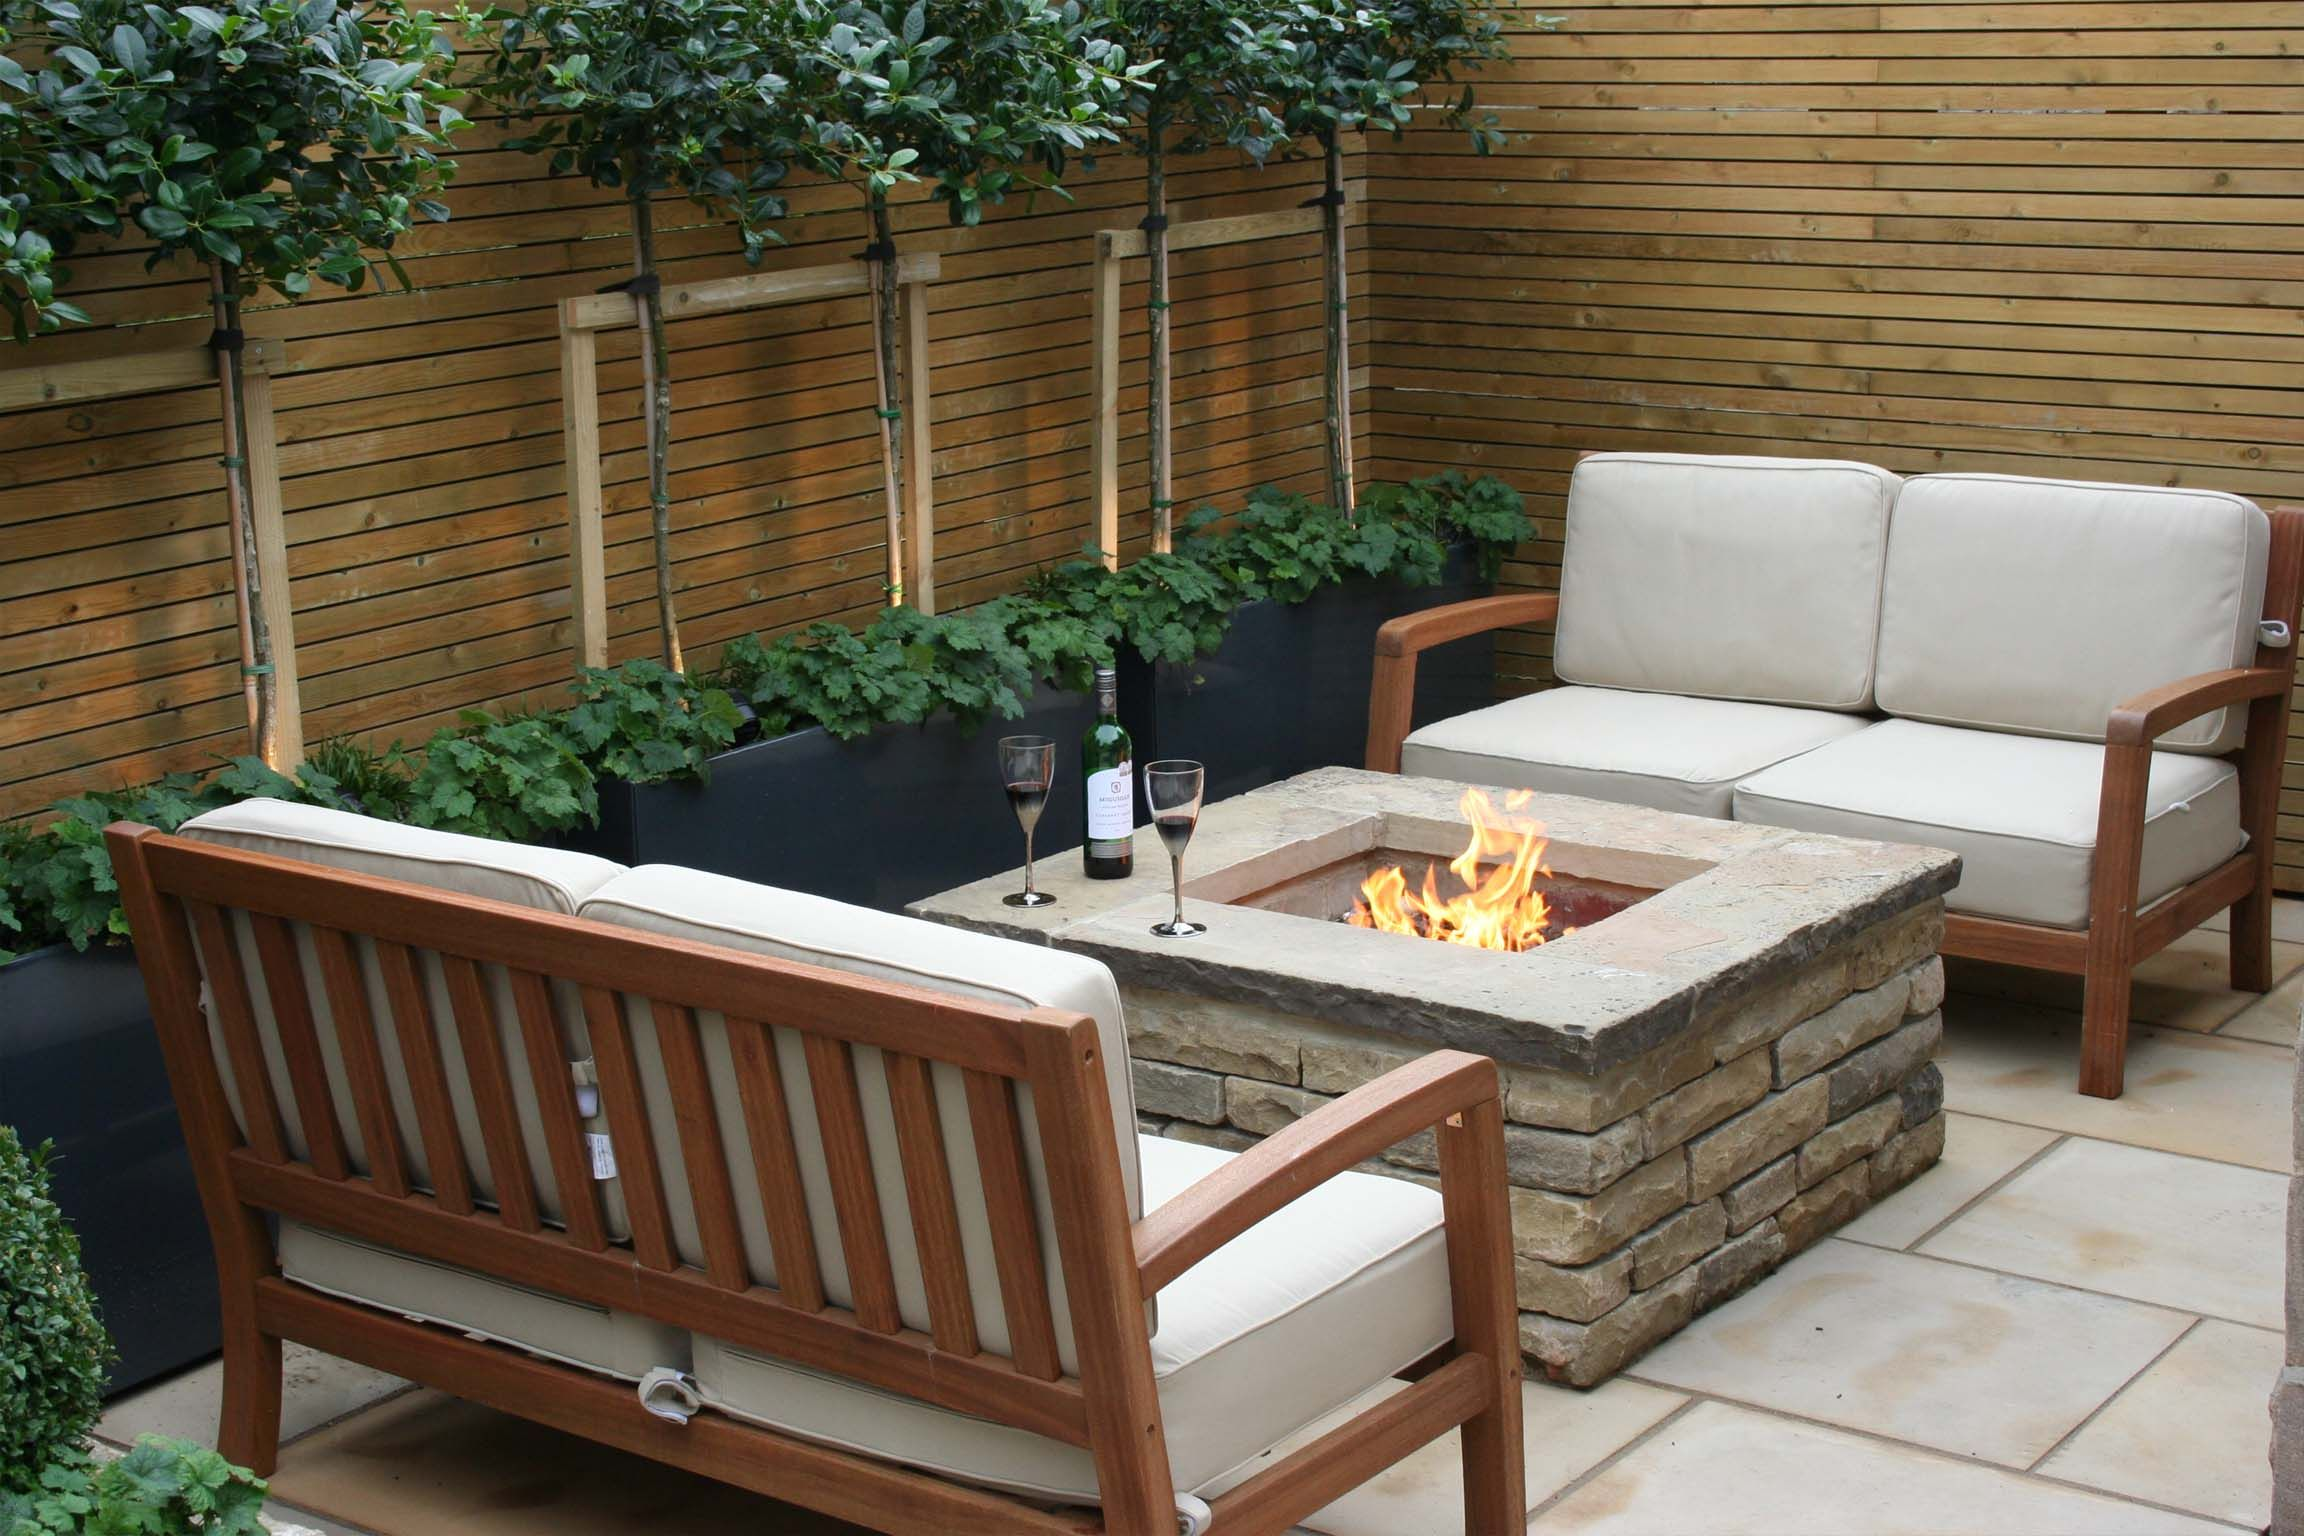 Urban Chic Courtyard Garden Outdoor Fire Pit Outdoor Sofas Bestall